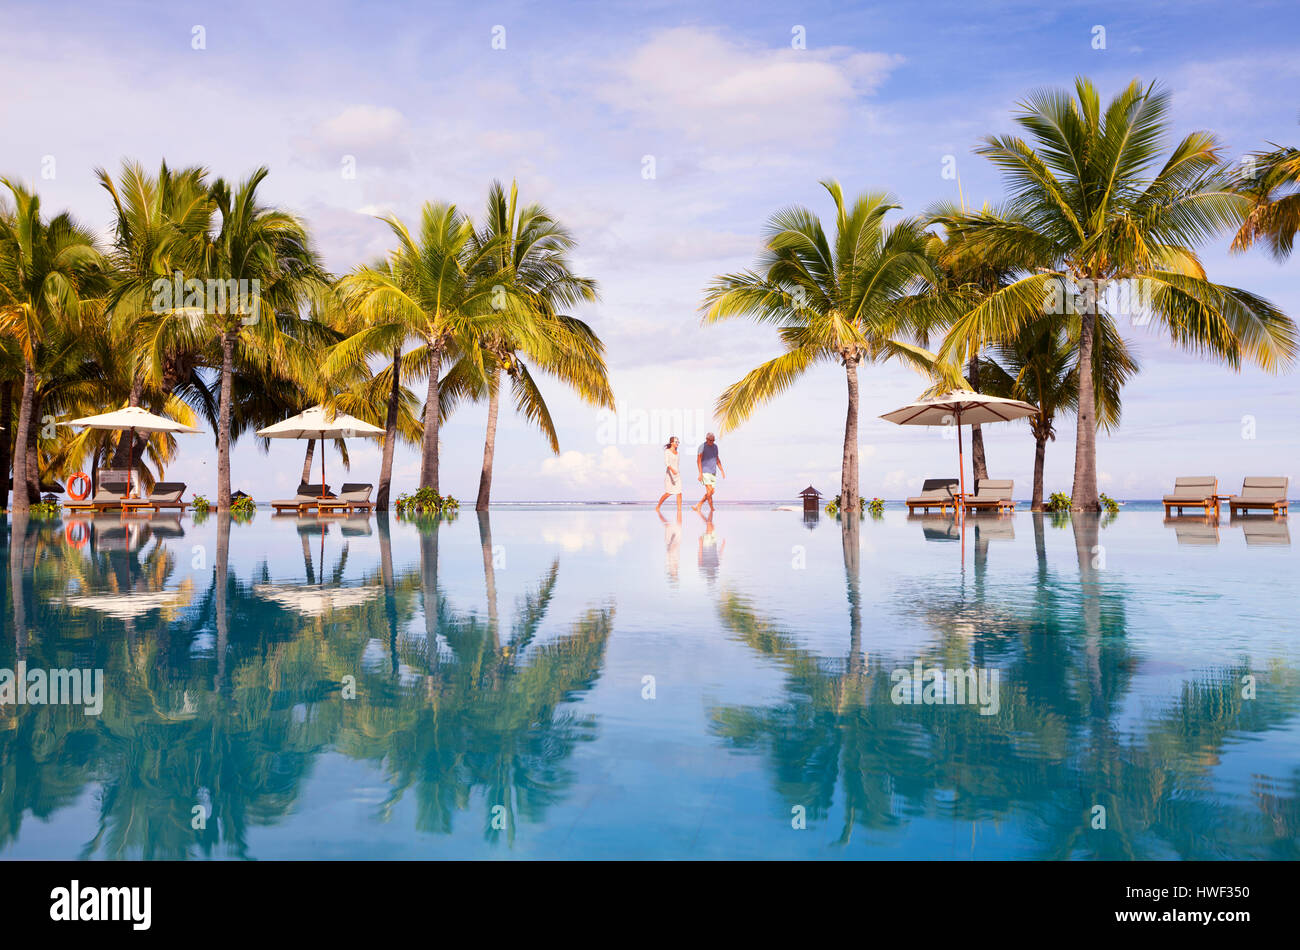 Honeymooners walking neer swimming pool. Luxurious five stars holiday resort on tropical paradise island - Stock Image